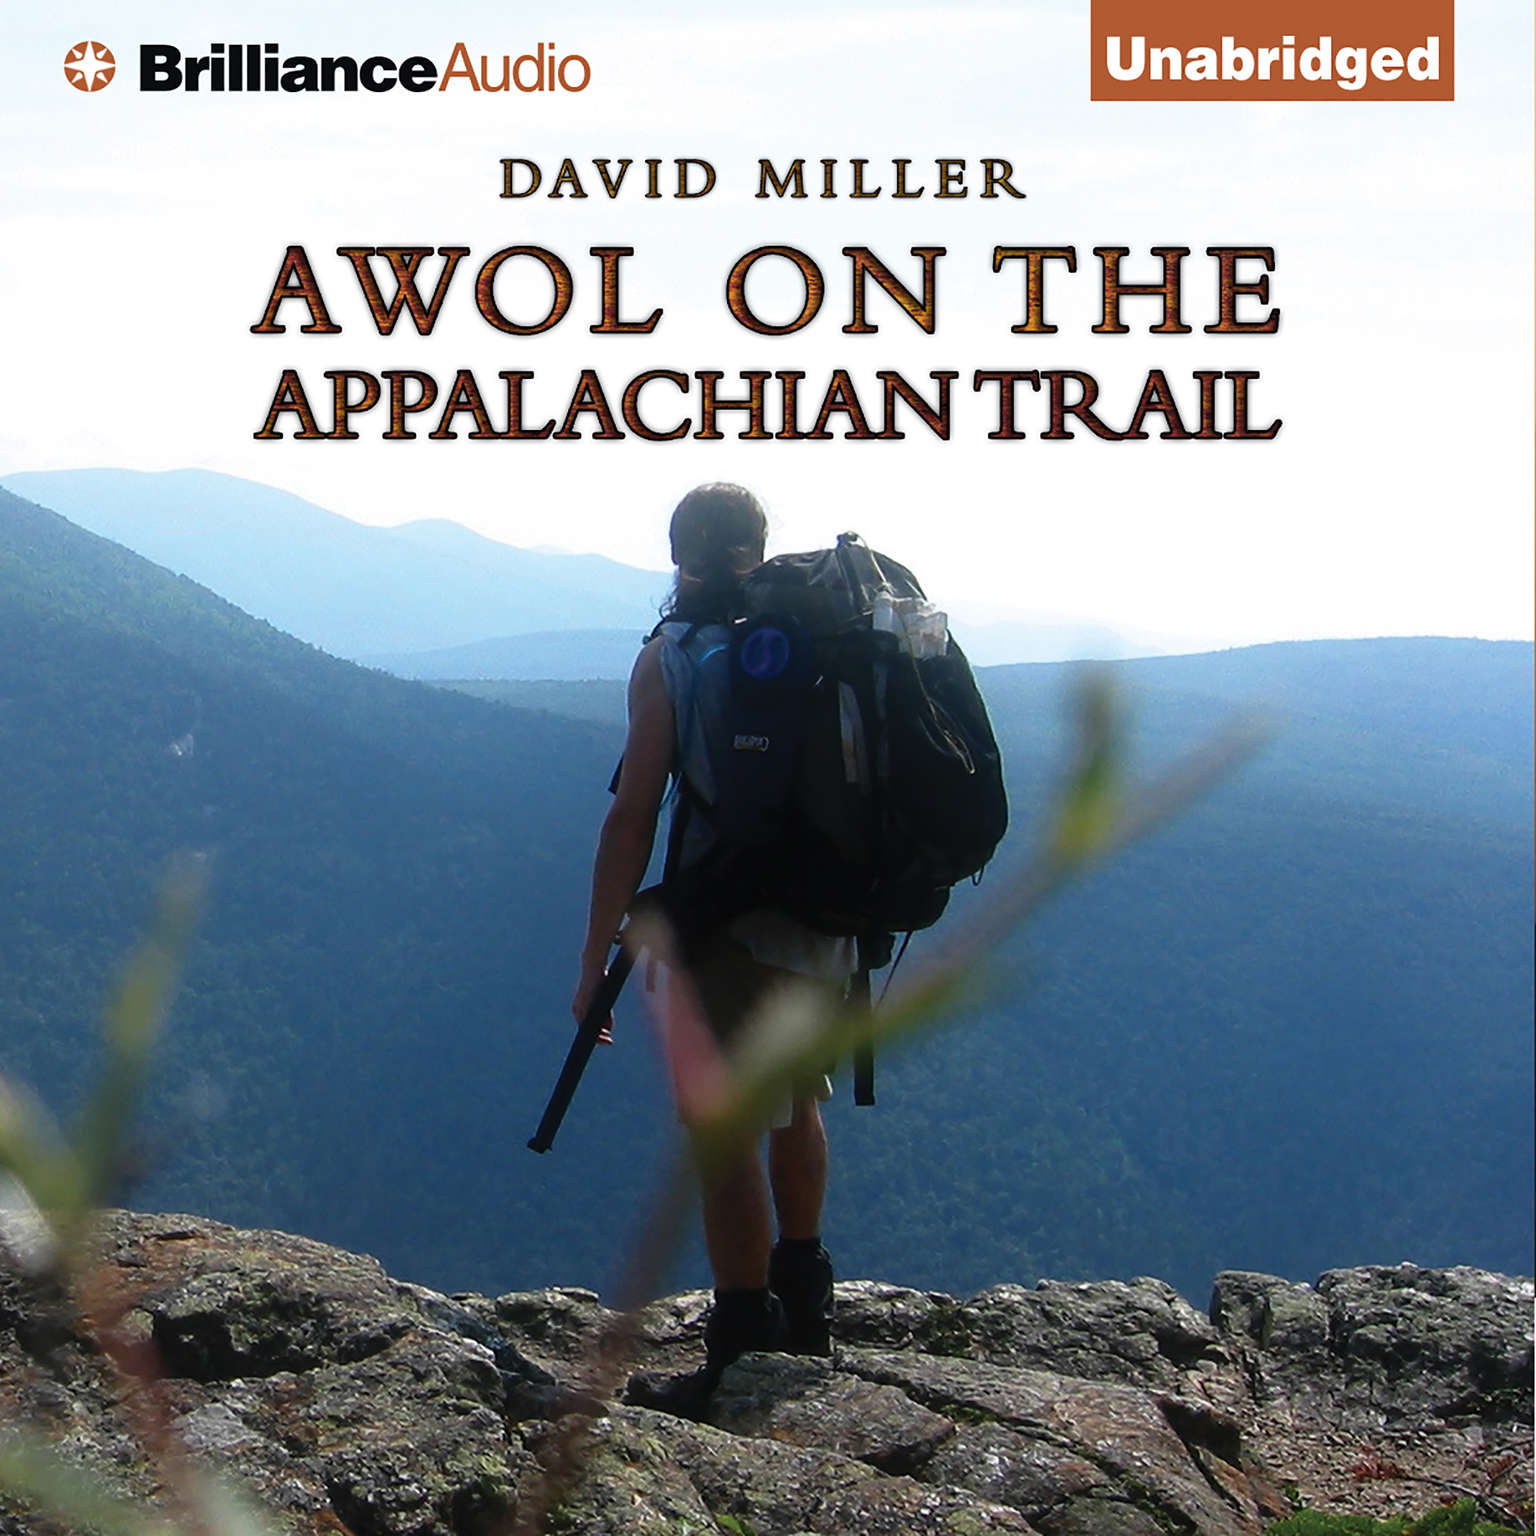 How To List The Appalachian Trail On A Resume